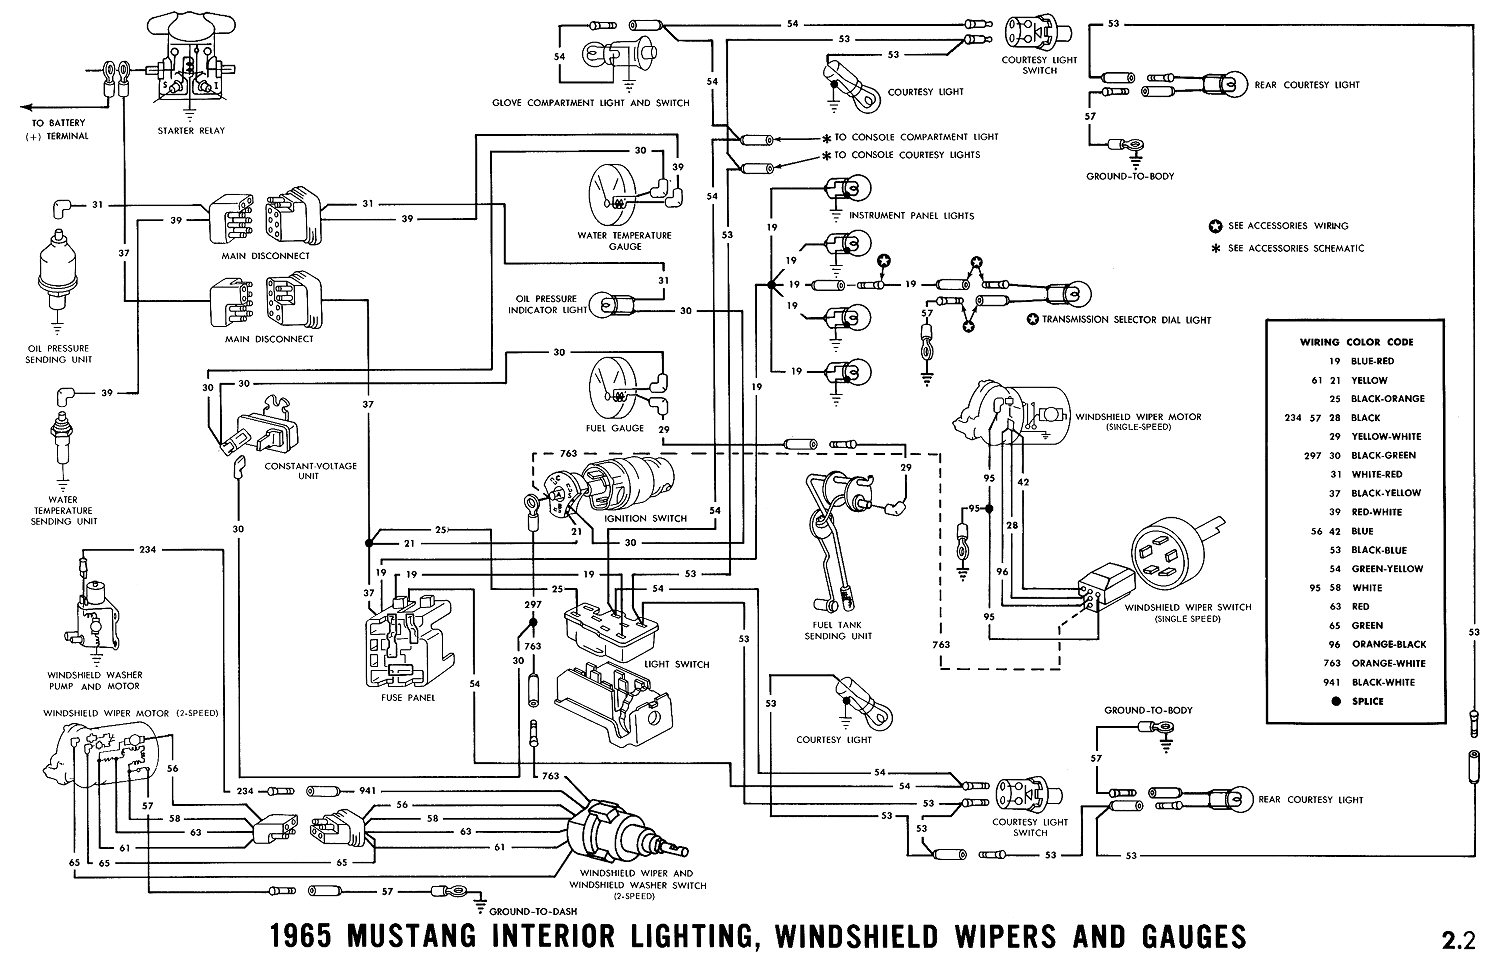 Ford Mustang Diagram Wiring Online 09 Fuse Box 1965 Engine Data 2009